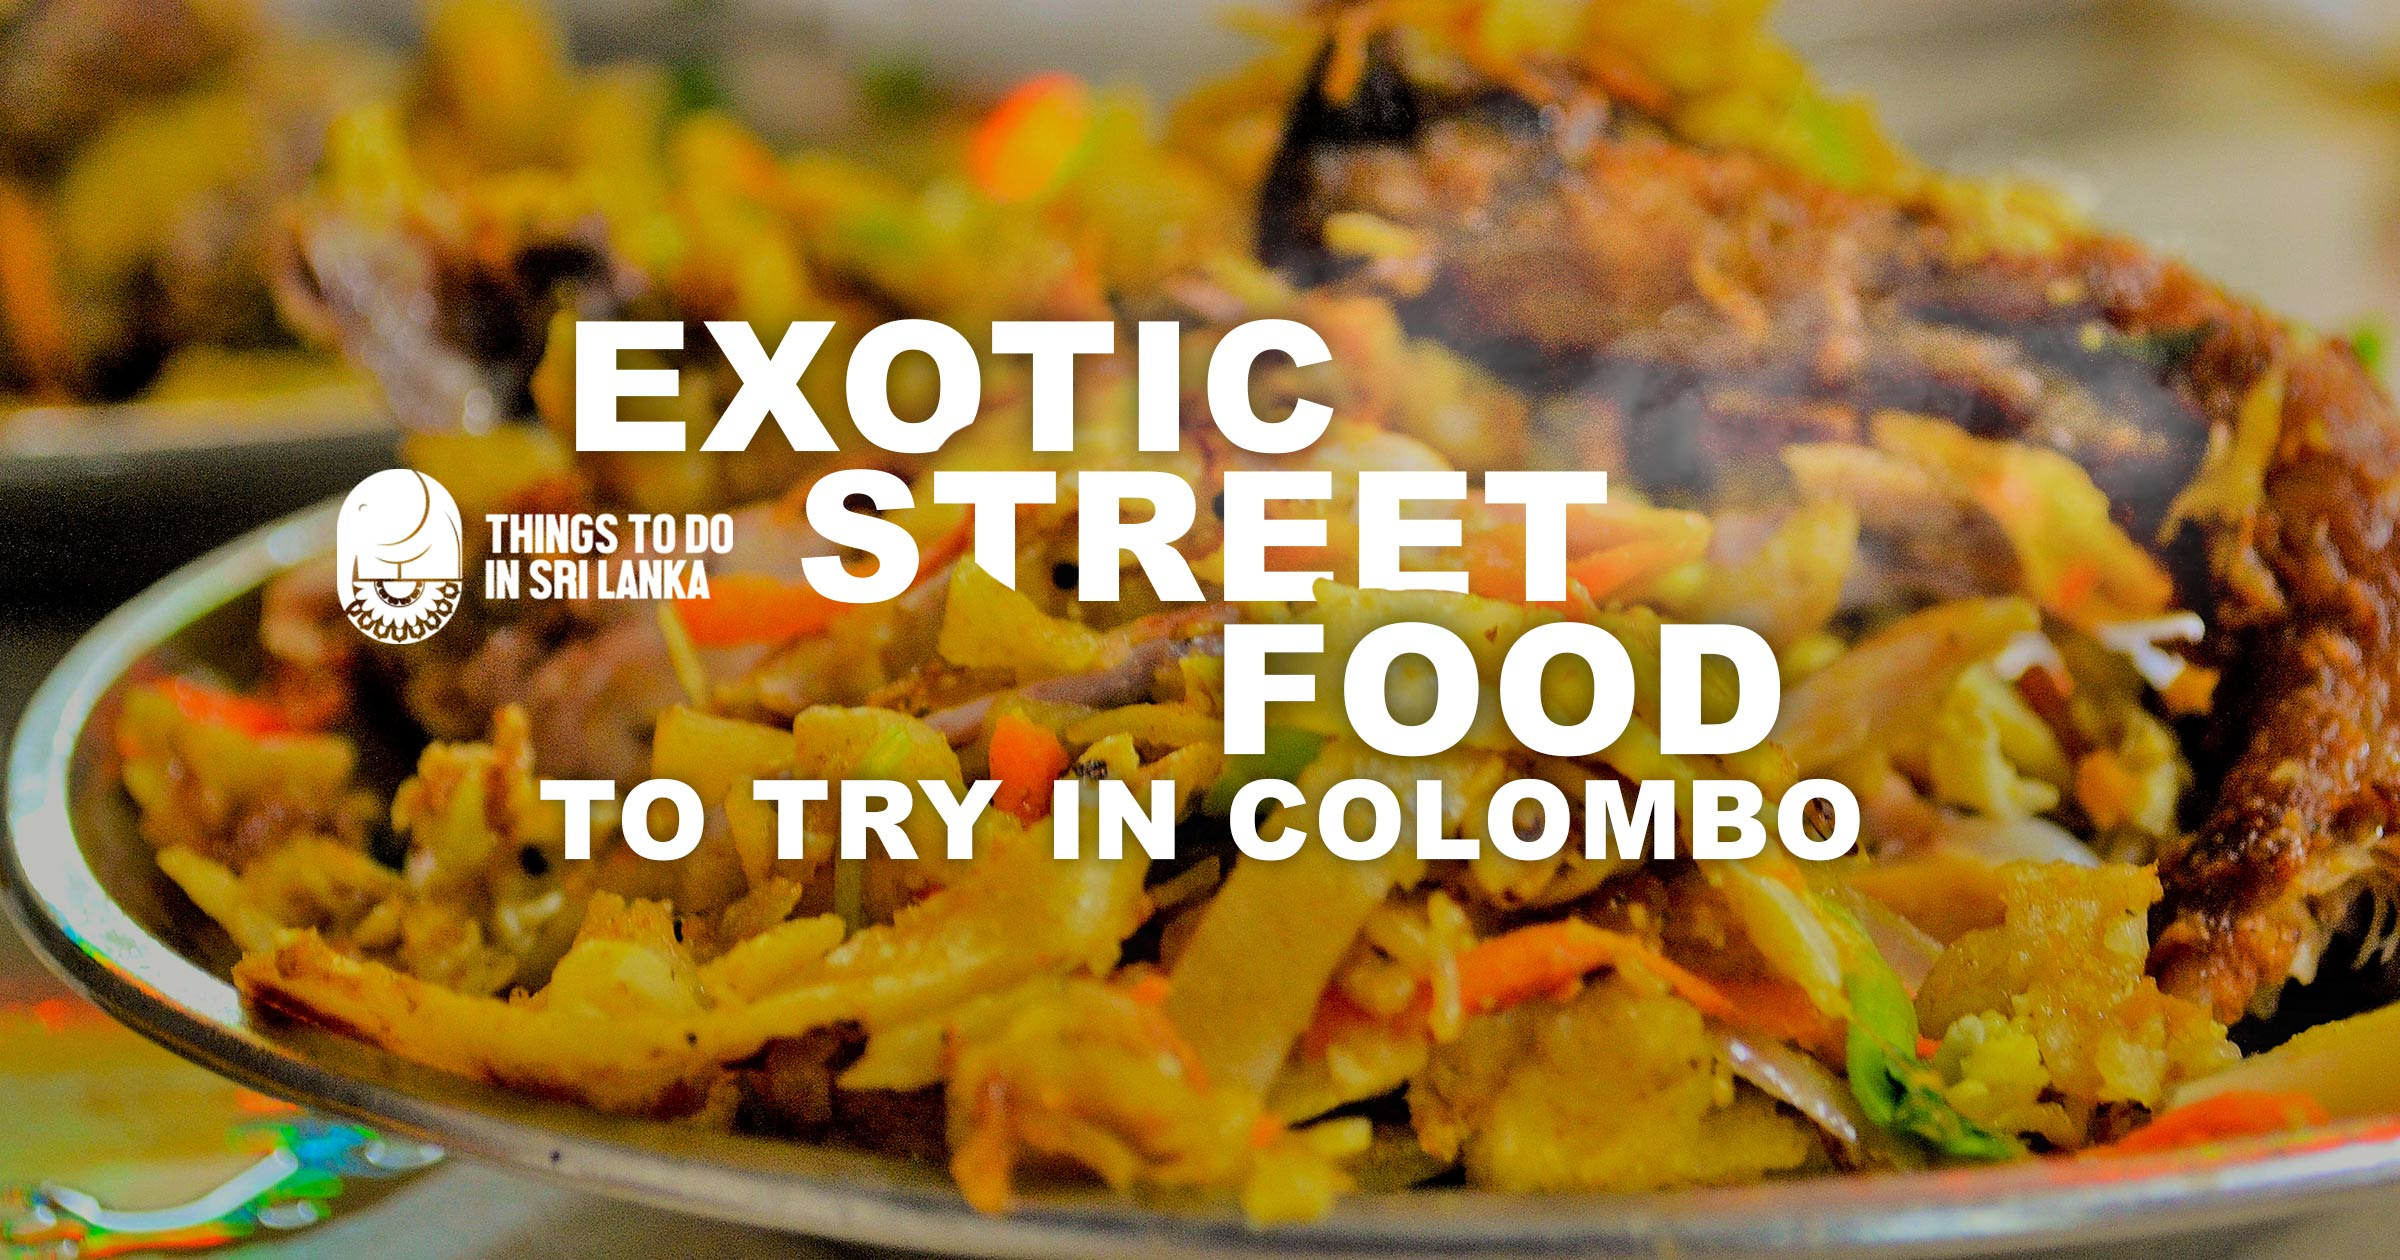 Exotic Street Foods to Try in Colombo